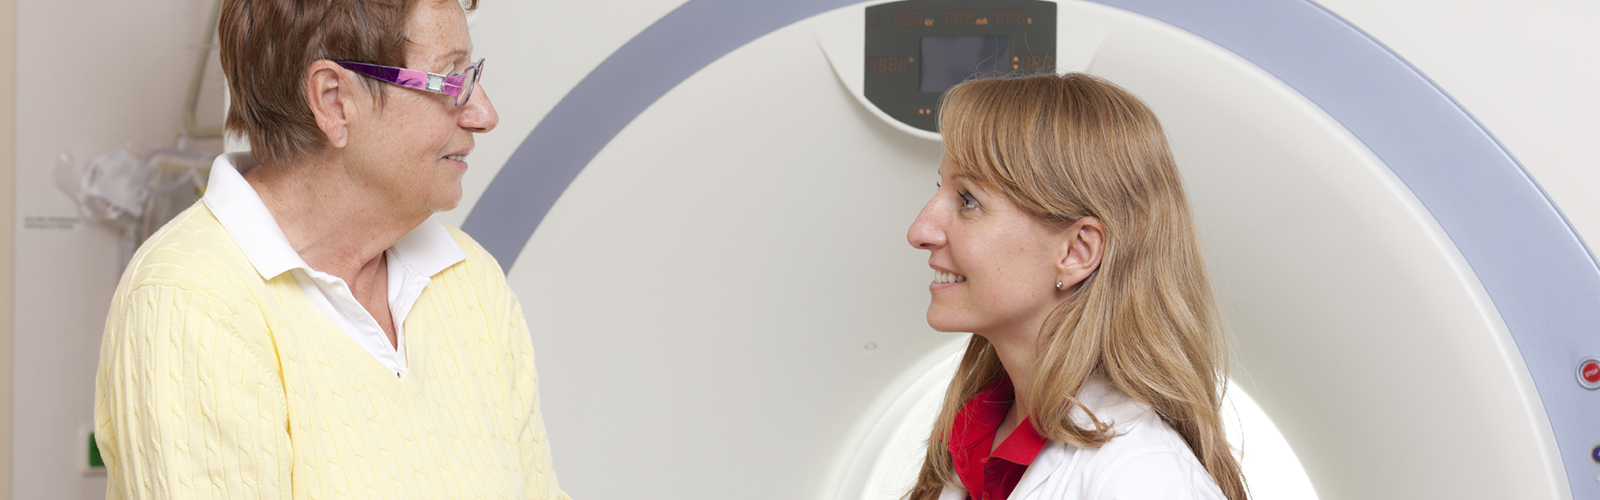 A doctor speaks with an oncology patient